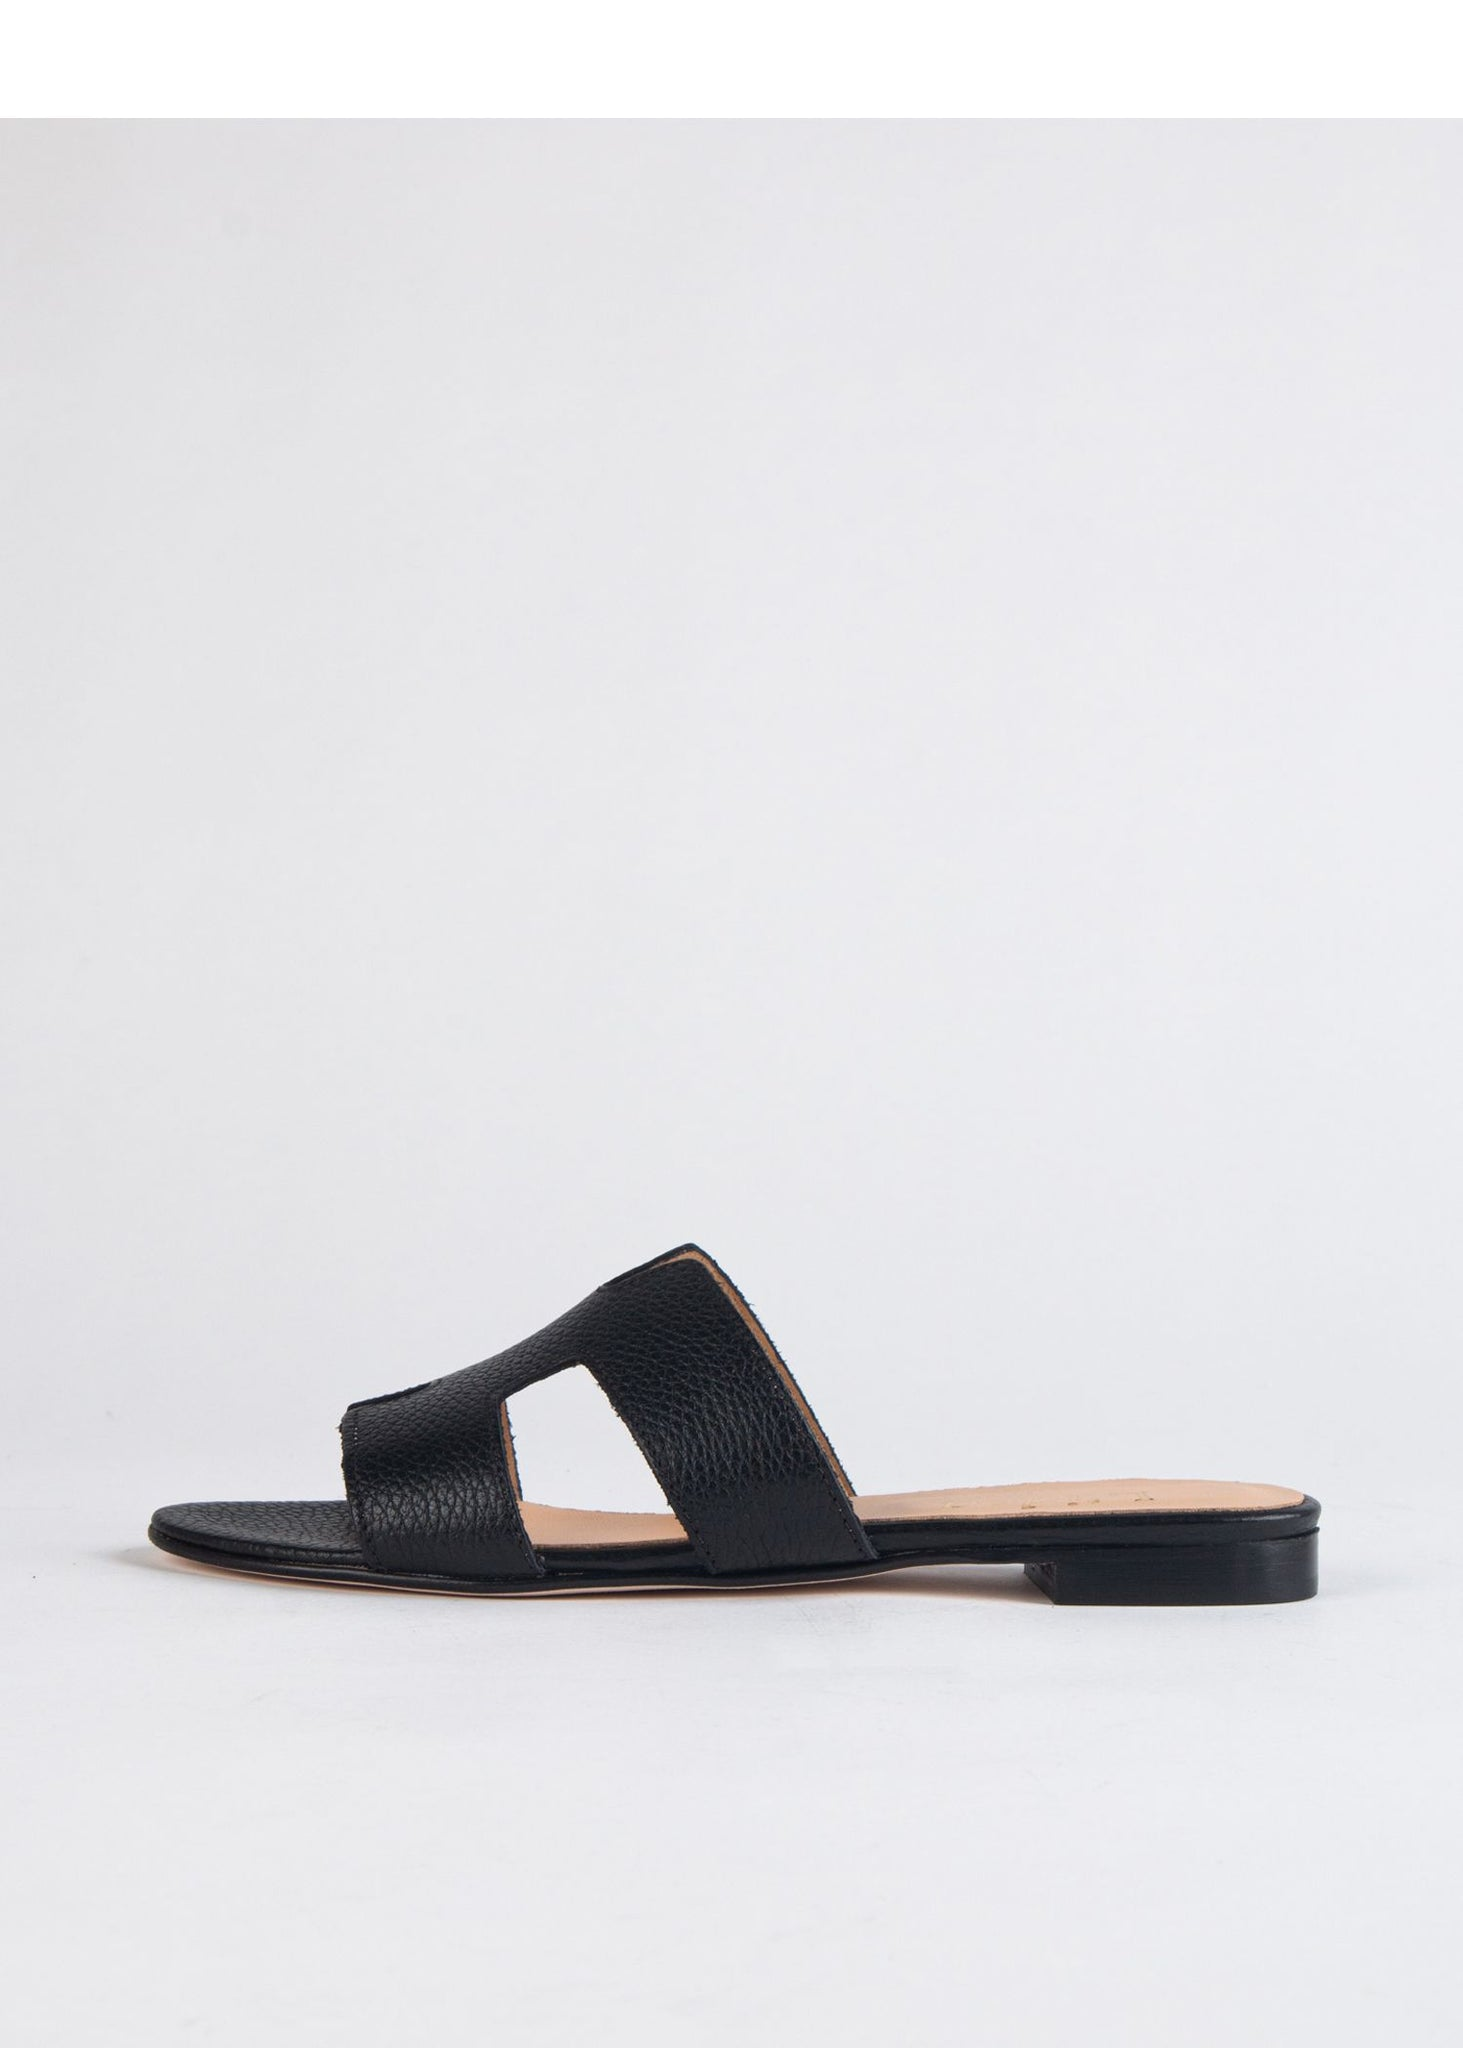 SIDE CUT-OUT SANDAL